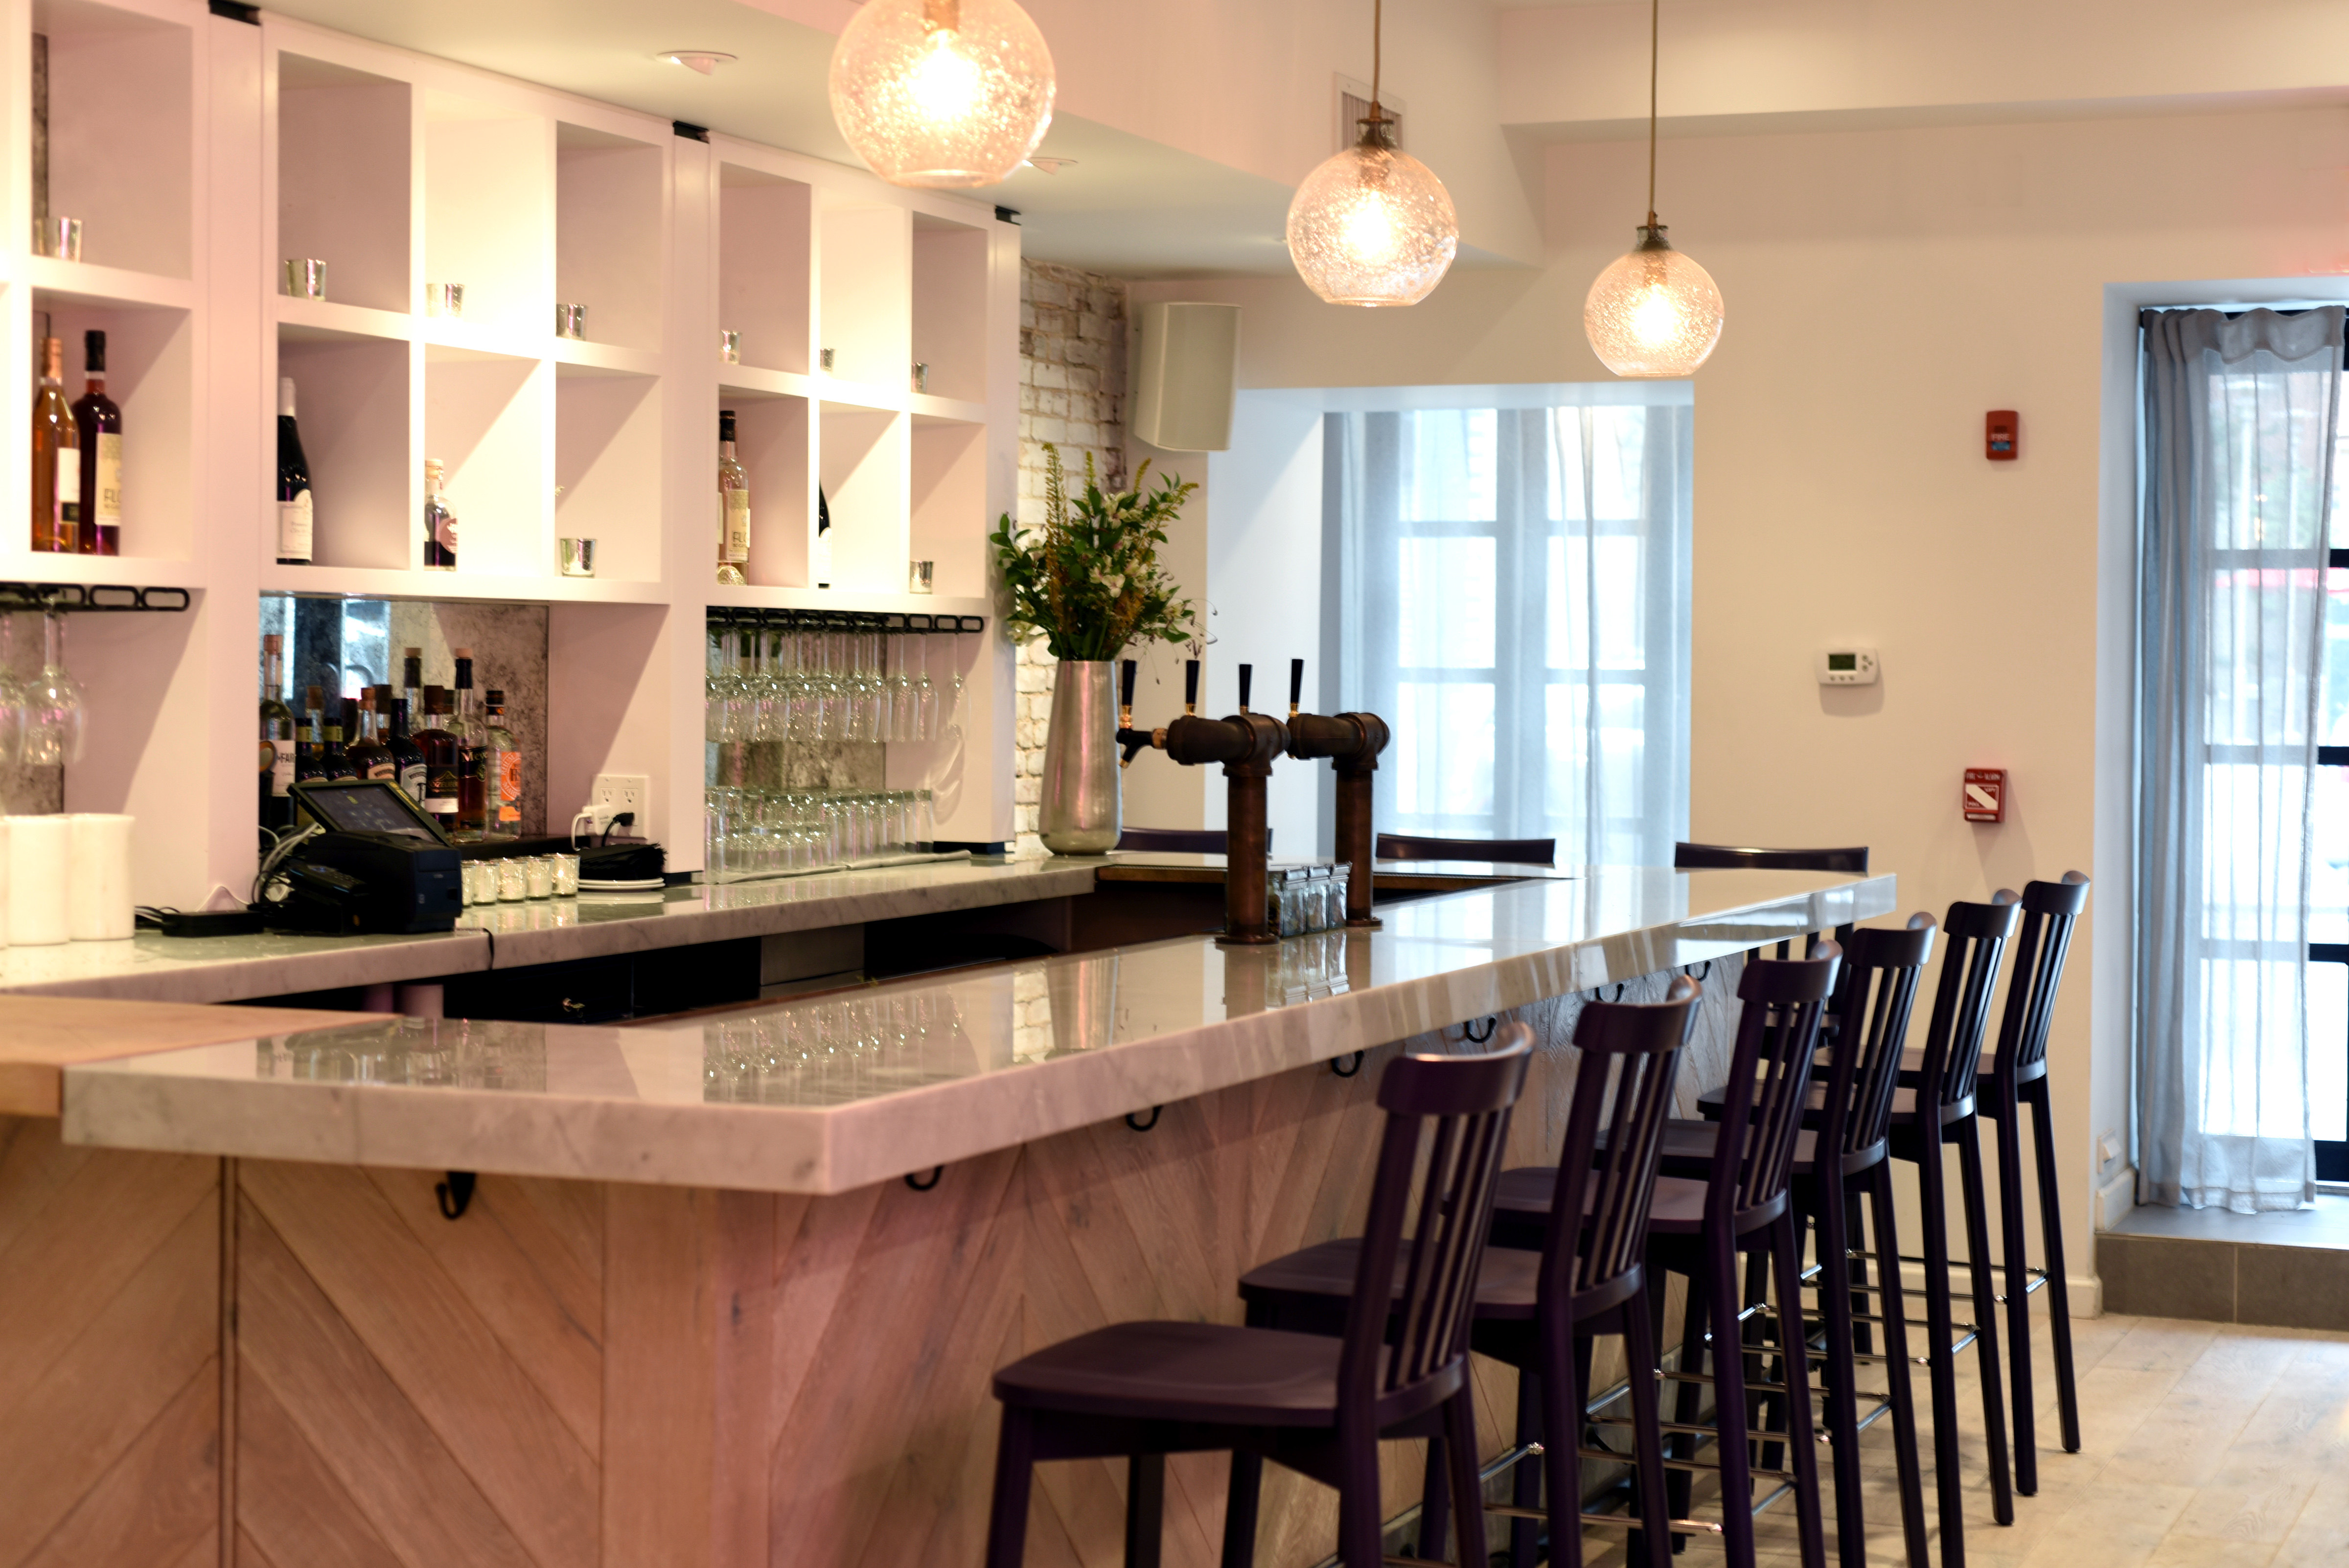 Enjoy a drink at the P.S. Kitchen bar